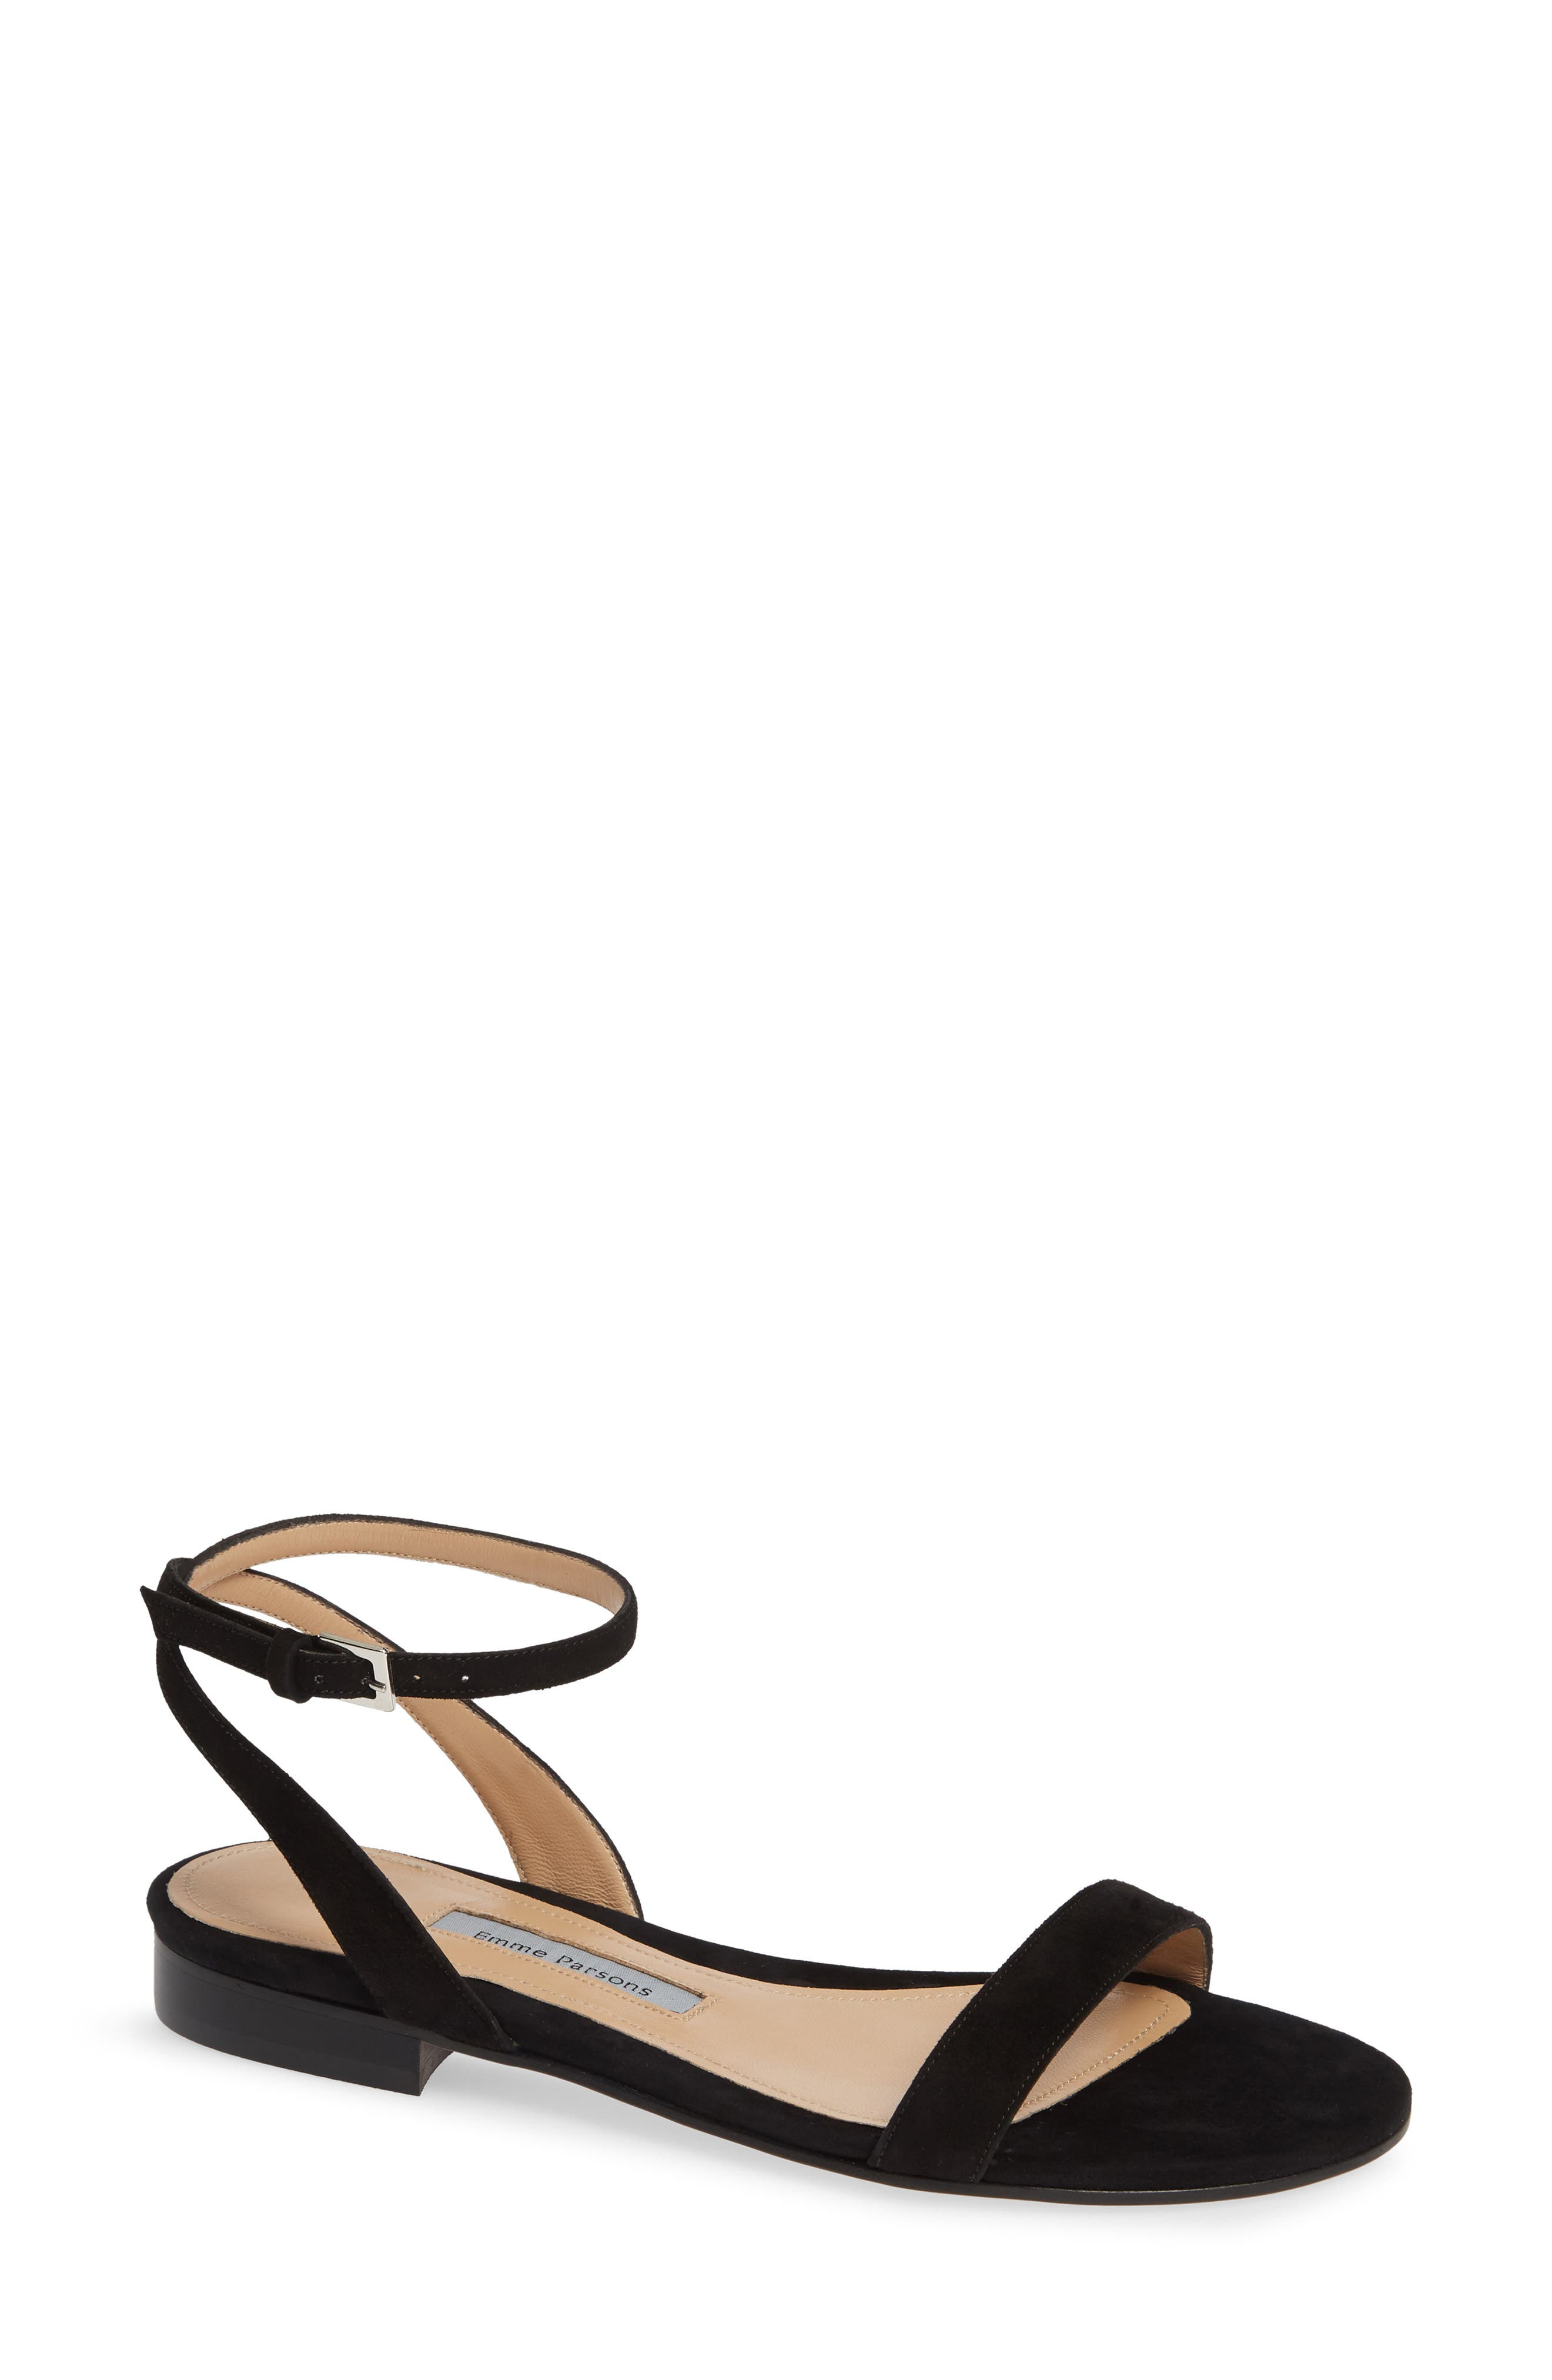 EMME PARSONS, One Ankle Strap Flat Sandal, Main thumbnail 1, color, BLACK